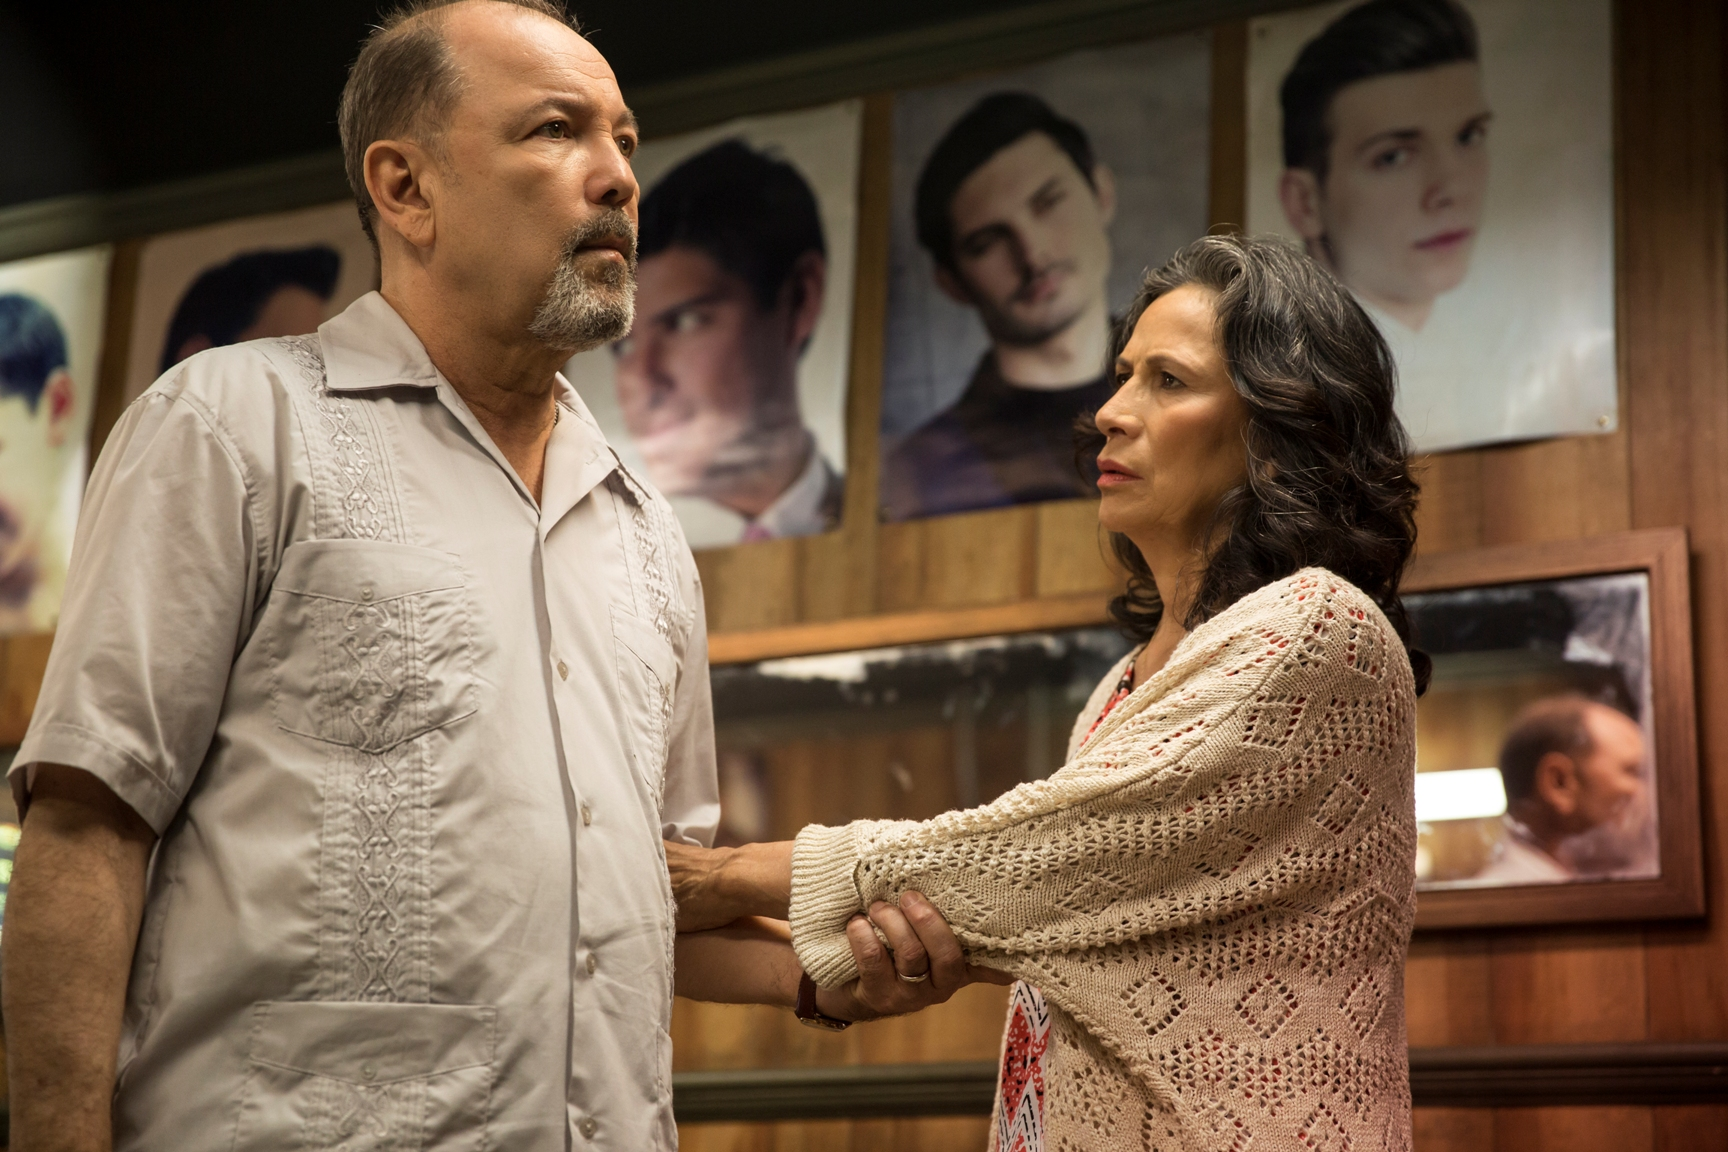 Ruben Blades as Daniel Salazar and Patricia Reyes Spíndola as Griselda Salazar - Fear The Walking Dead _ Season 1, Episode 2 - Photo Credit: Justina Mintz/AMC